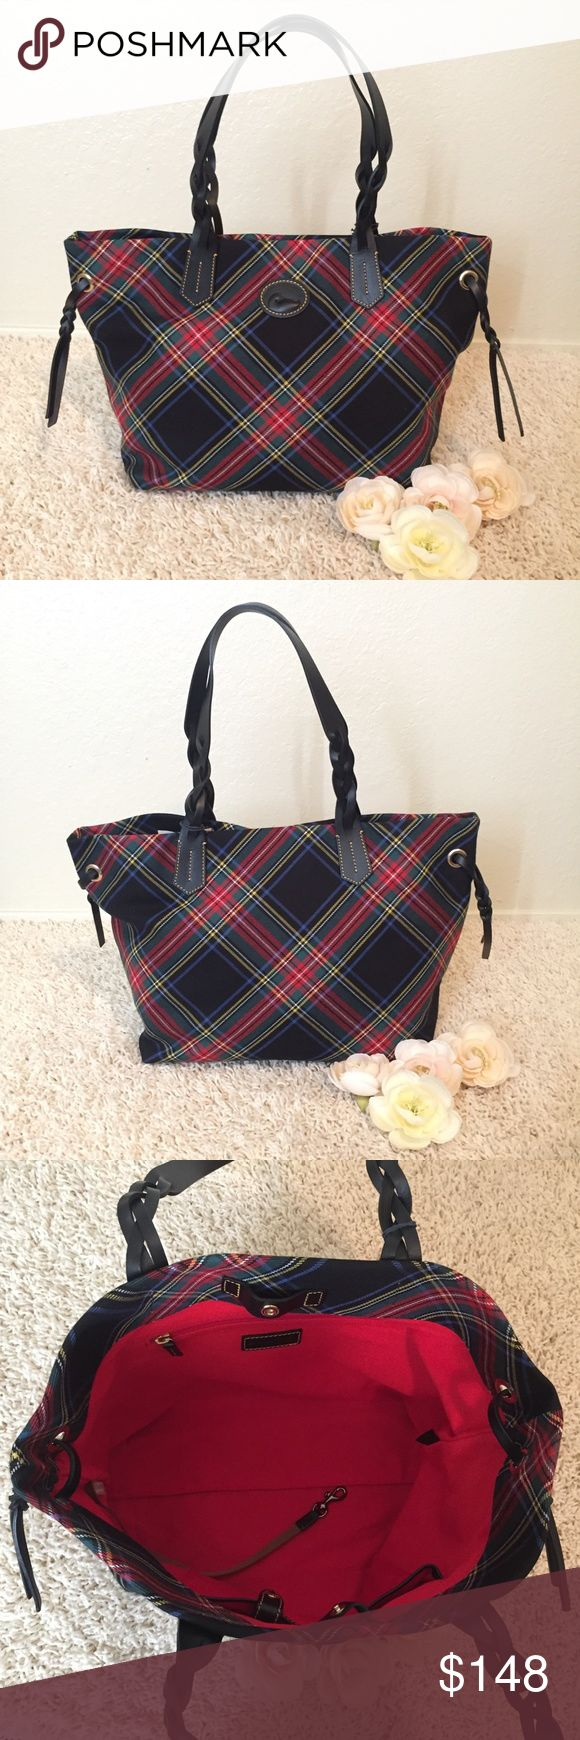 "Dooney & Bourke Black Tartan Shopper Dooney & Bourke Black Tartan Shopper; A brand new 100% authentic handbag from Dooney & Bourke; Original price: $168 +Tax; Size: Medium-Large; Color: Black Tartan; Material: Coated Cotton; Dimension: H 11.25"" x W 6.5"" x L 12.5""; Others: One inside zip pocket, One inside pocket, Cell phone pocket, Inside  key hook, Strap drop length 10"", Lined, Snap closure. Dooney & Bourke Bags Totes"